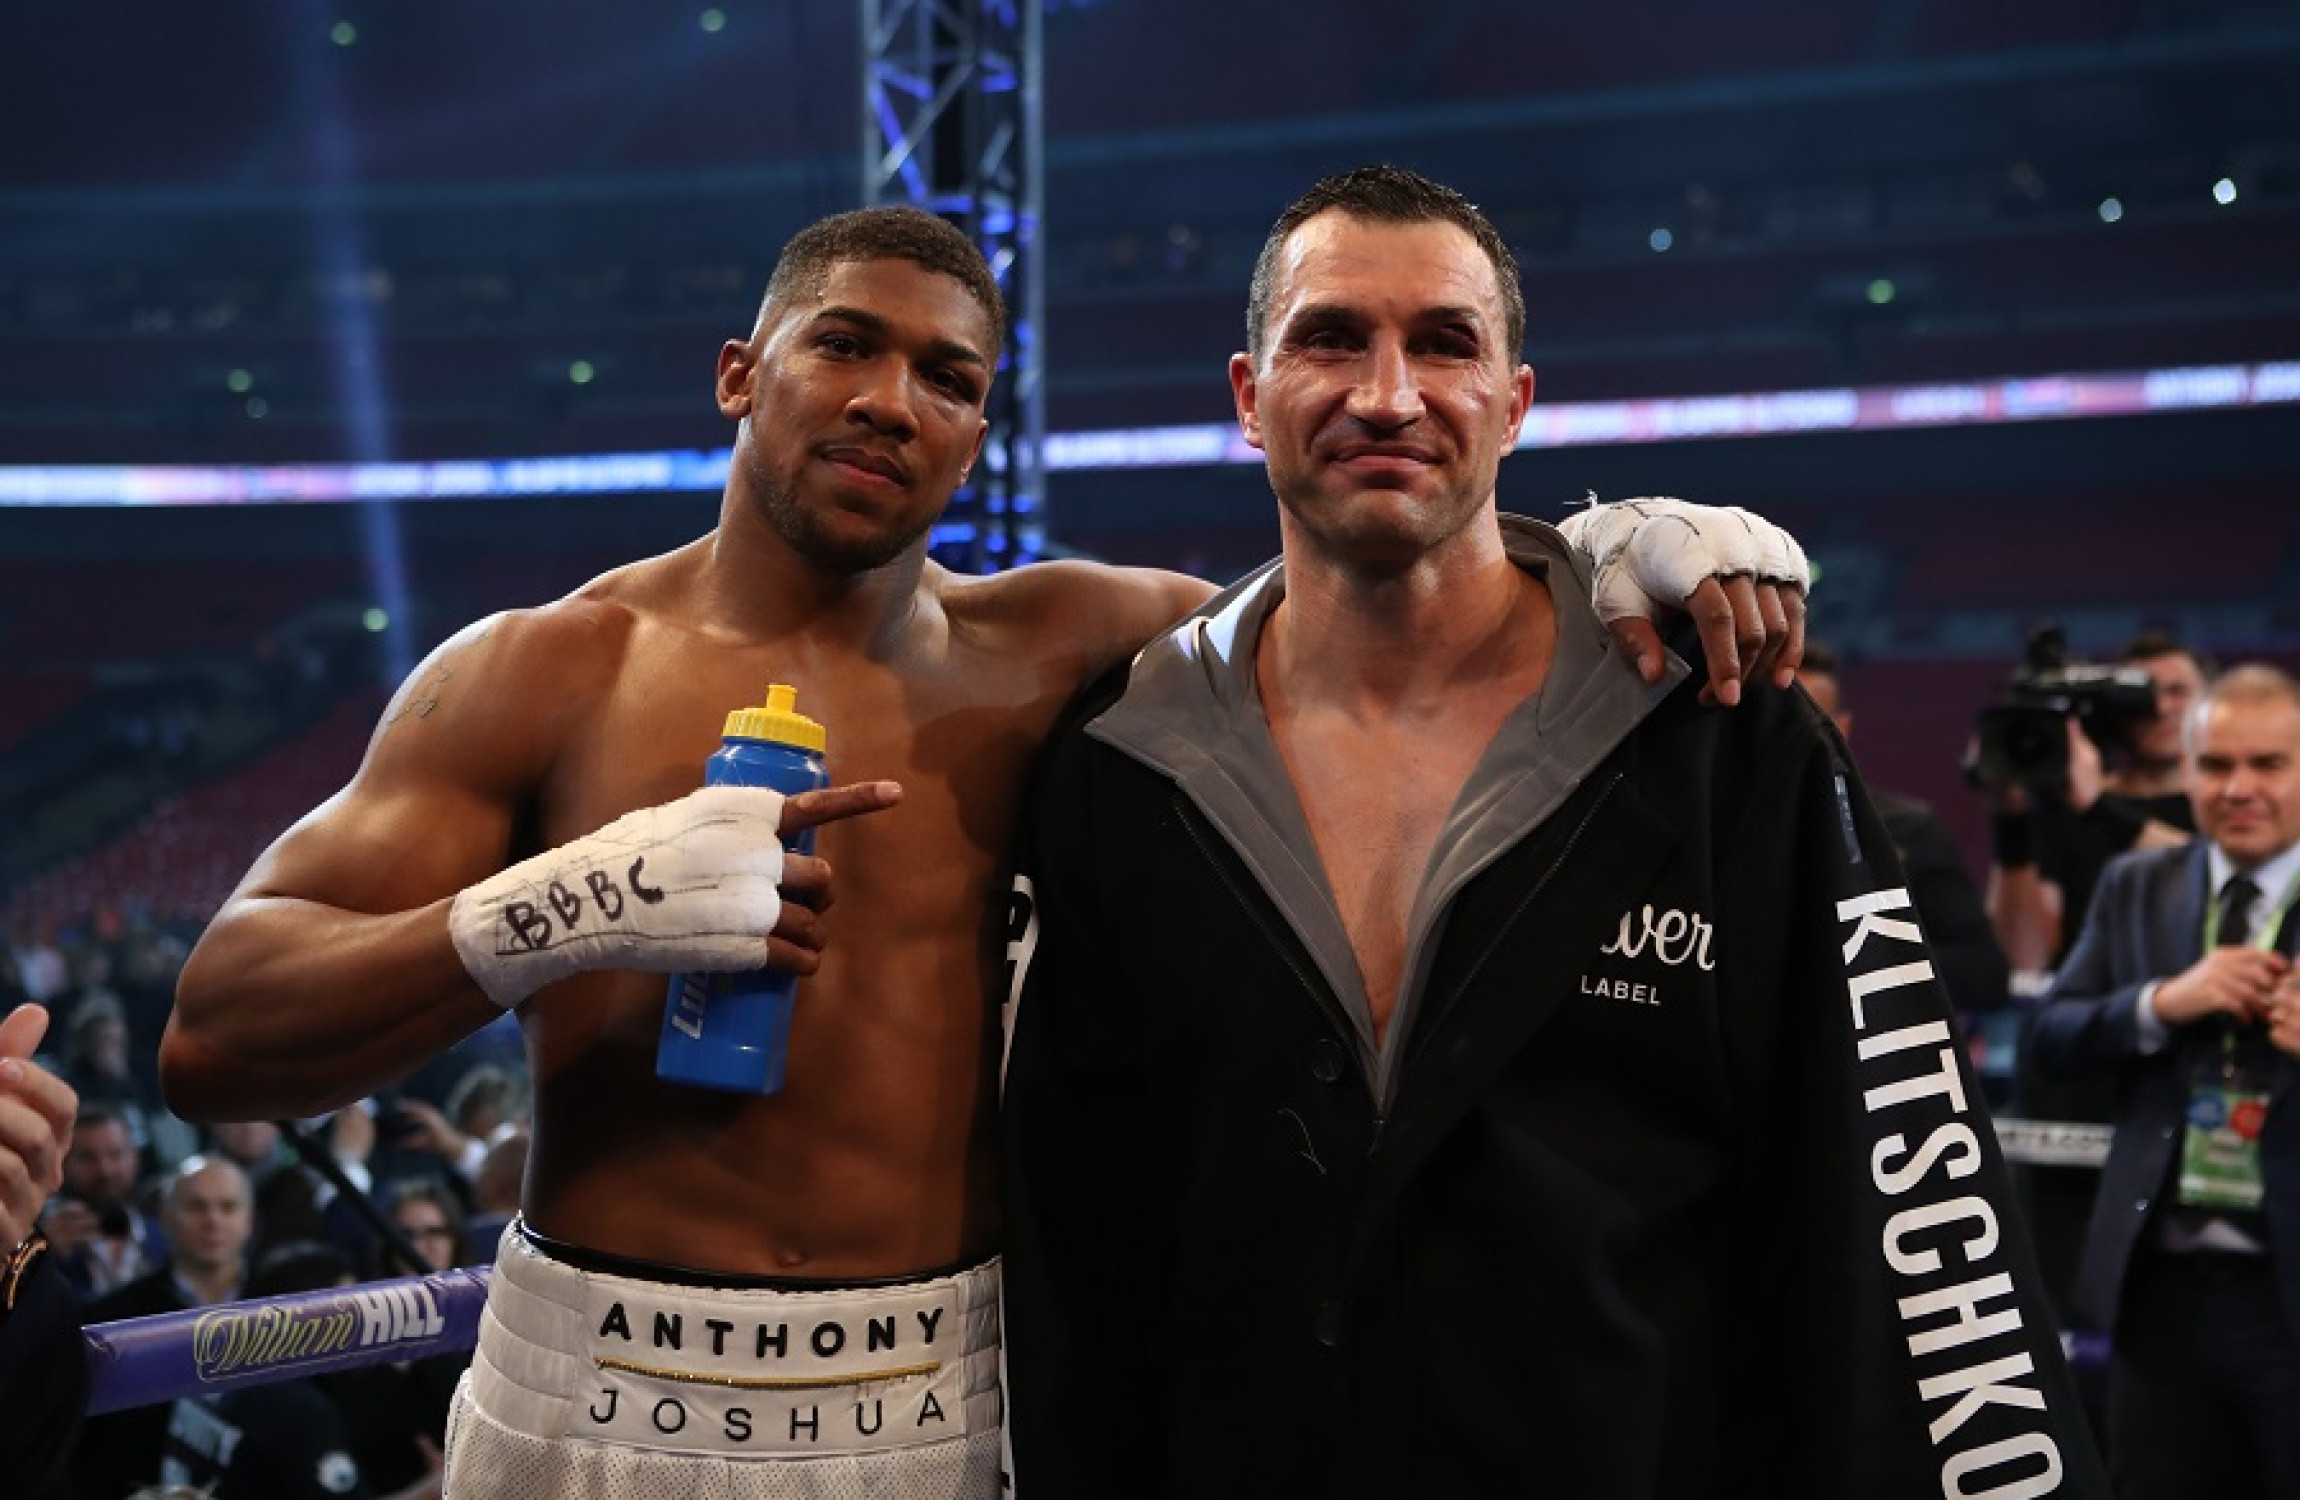 Anthony Joshua to hit jackpot with Vegas rematch with Wladimir Klitschko